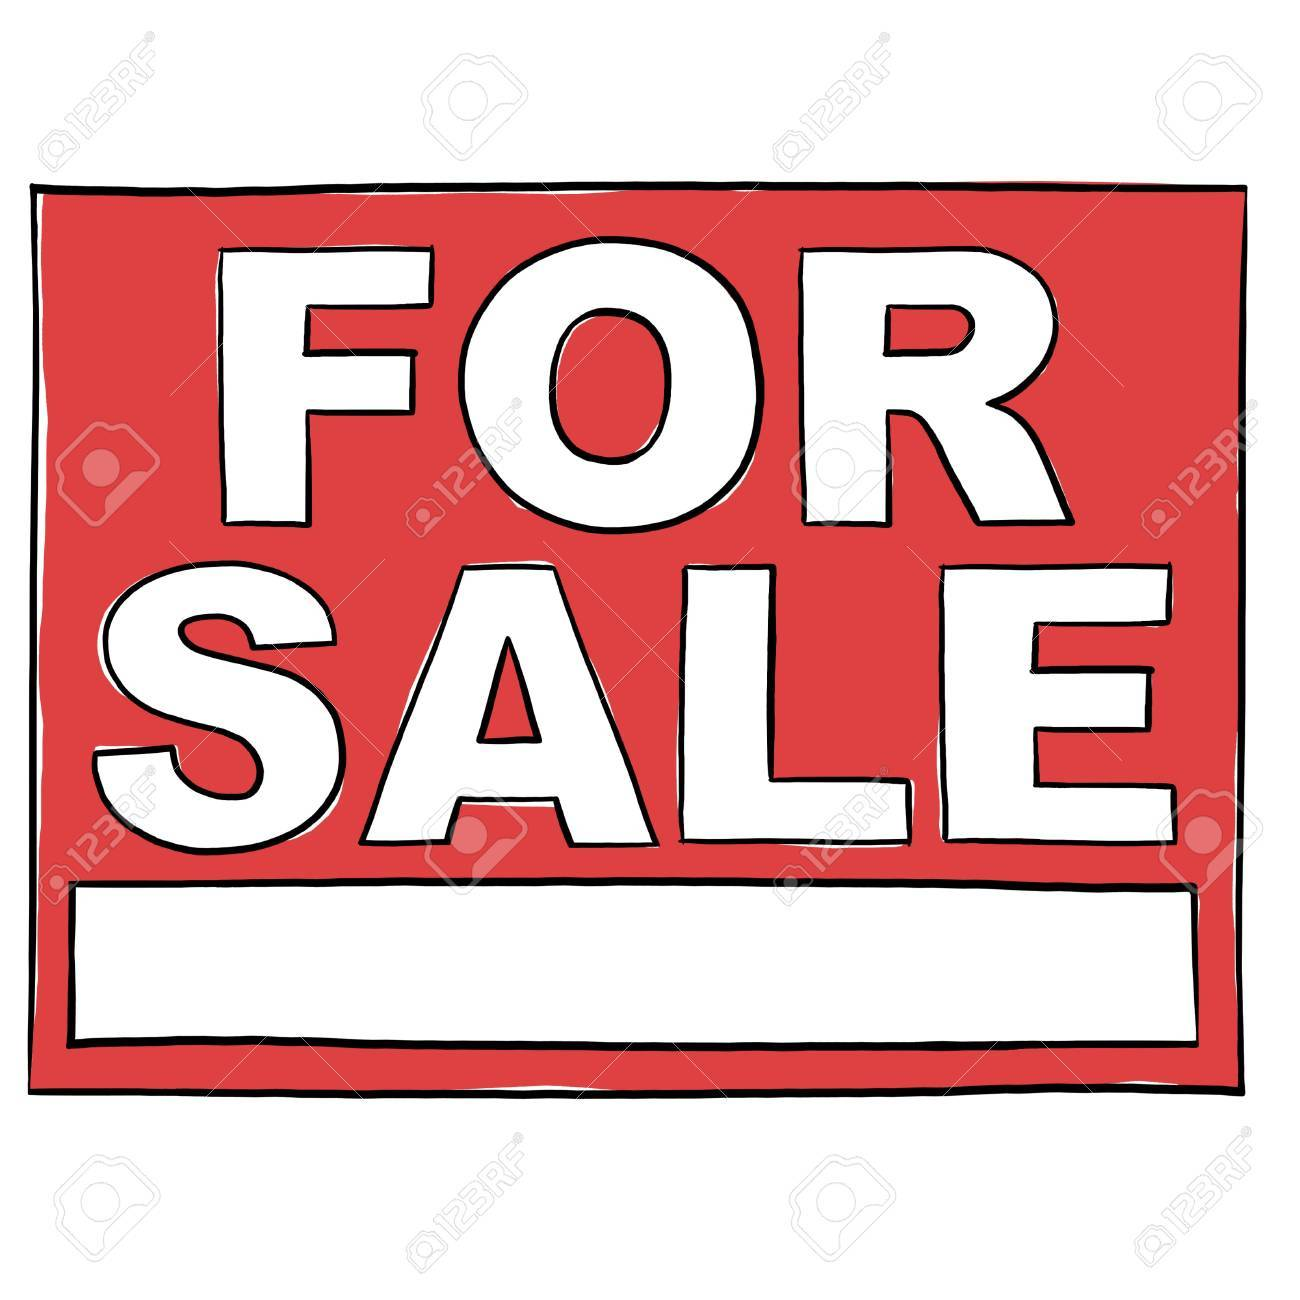 Property For Sale Sign illustration; For Sale Real Estate Sign Stock Illustration - 9640757